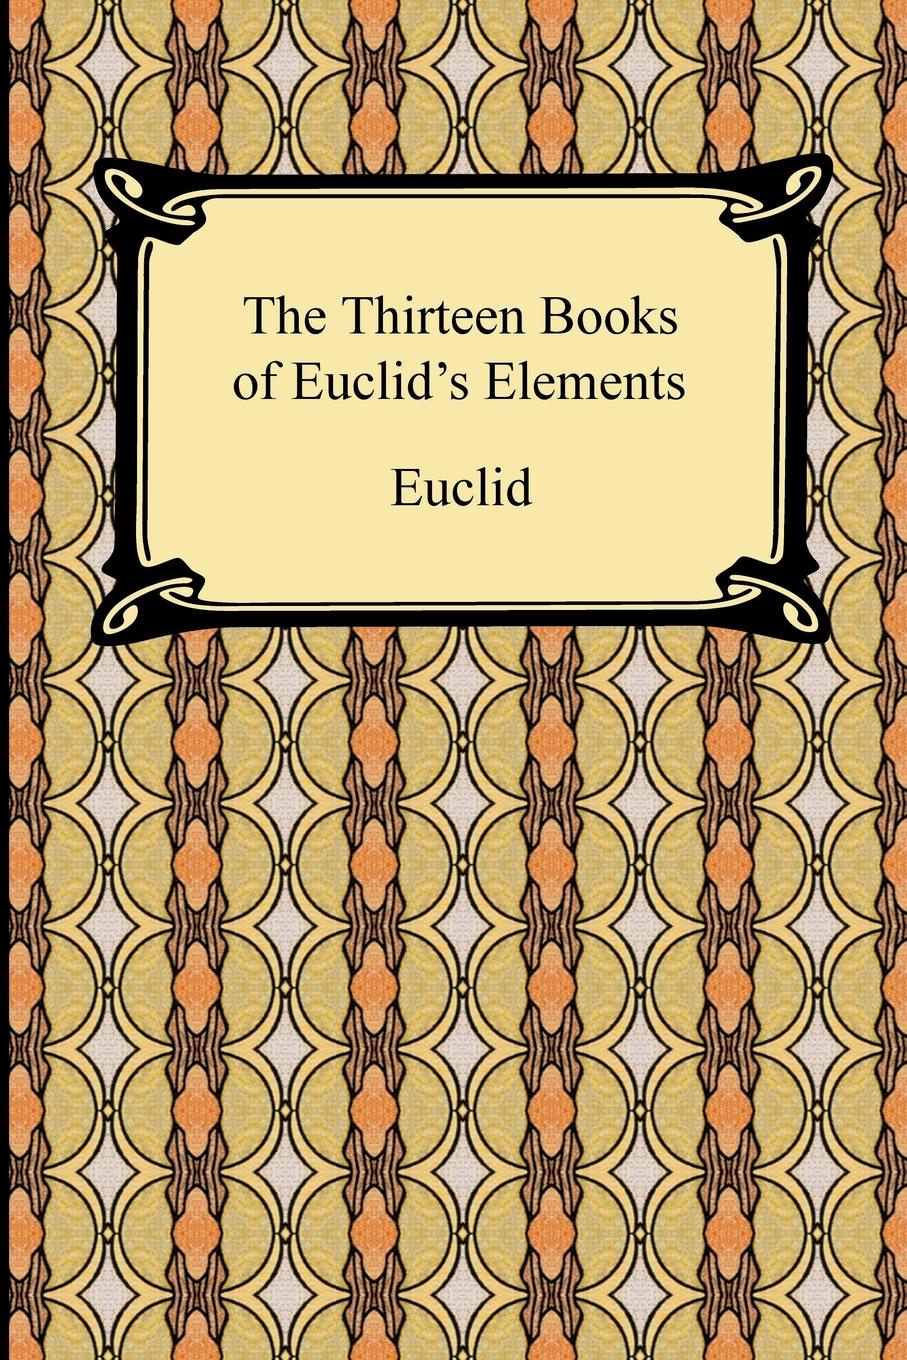 Euclid, Thomas Heath The Thirteen Books of Euclid's Elements robert simson the elements of euclid